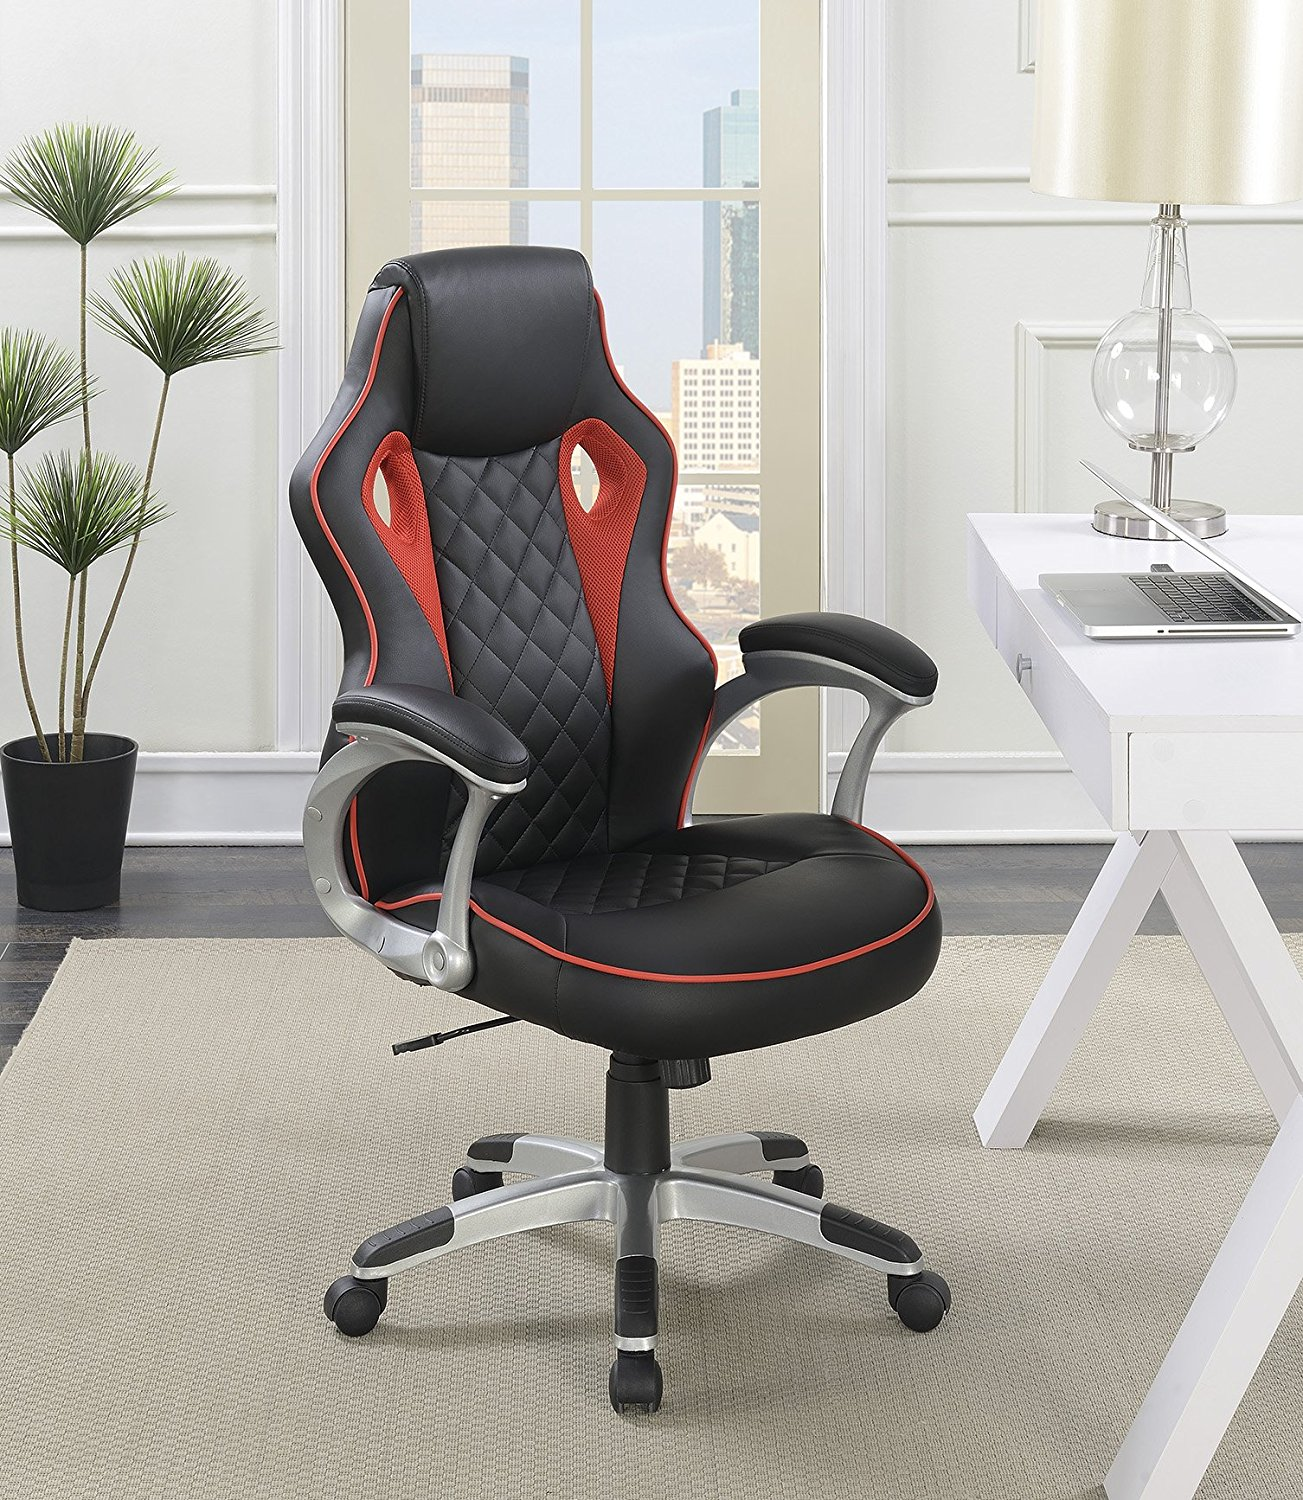 Buy Grand Prix Gt Office Chair In Red Black Amp Pitstop Gt Spoiler